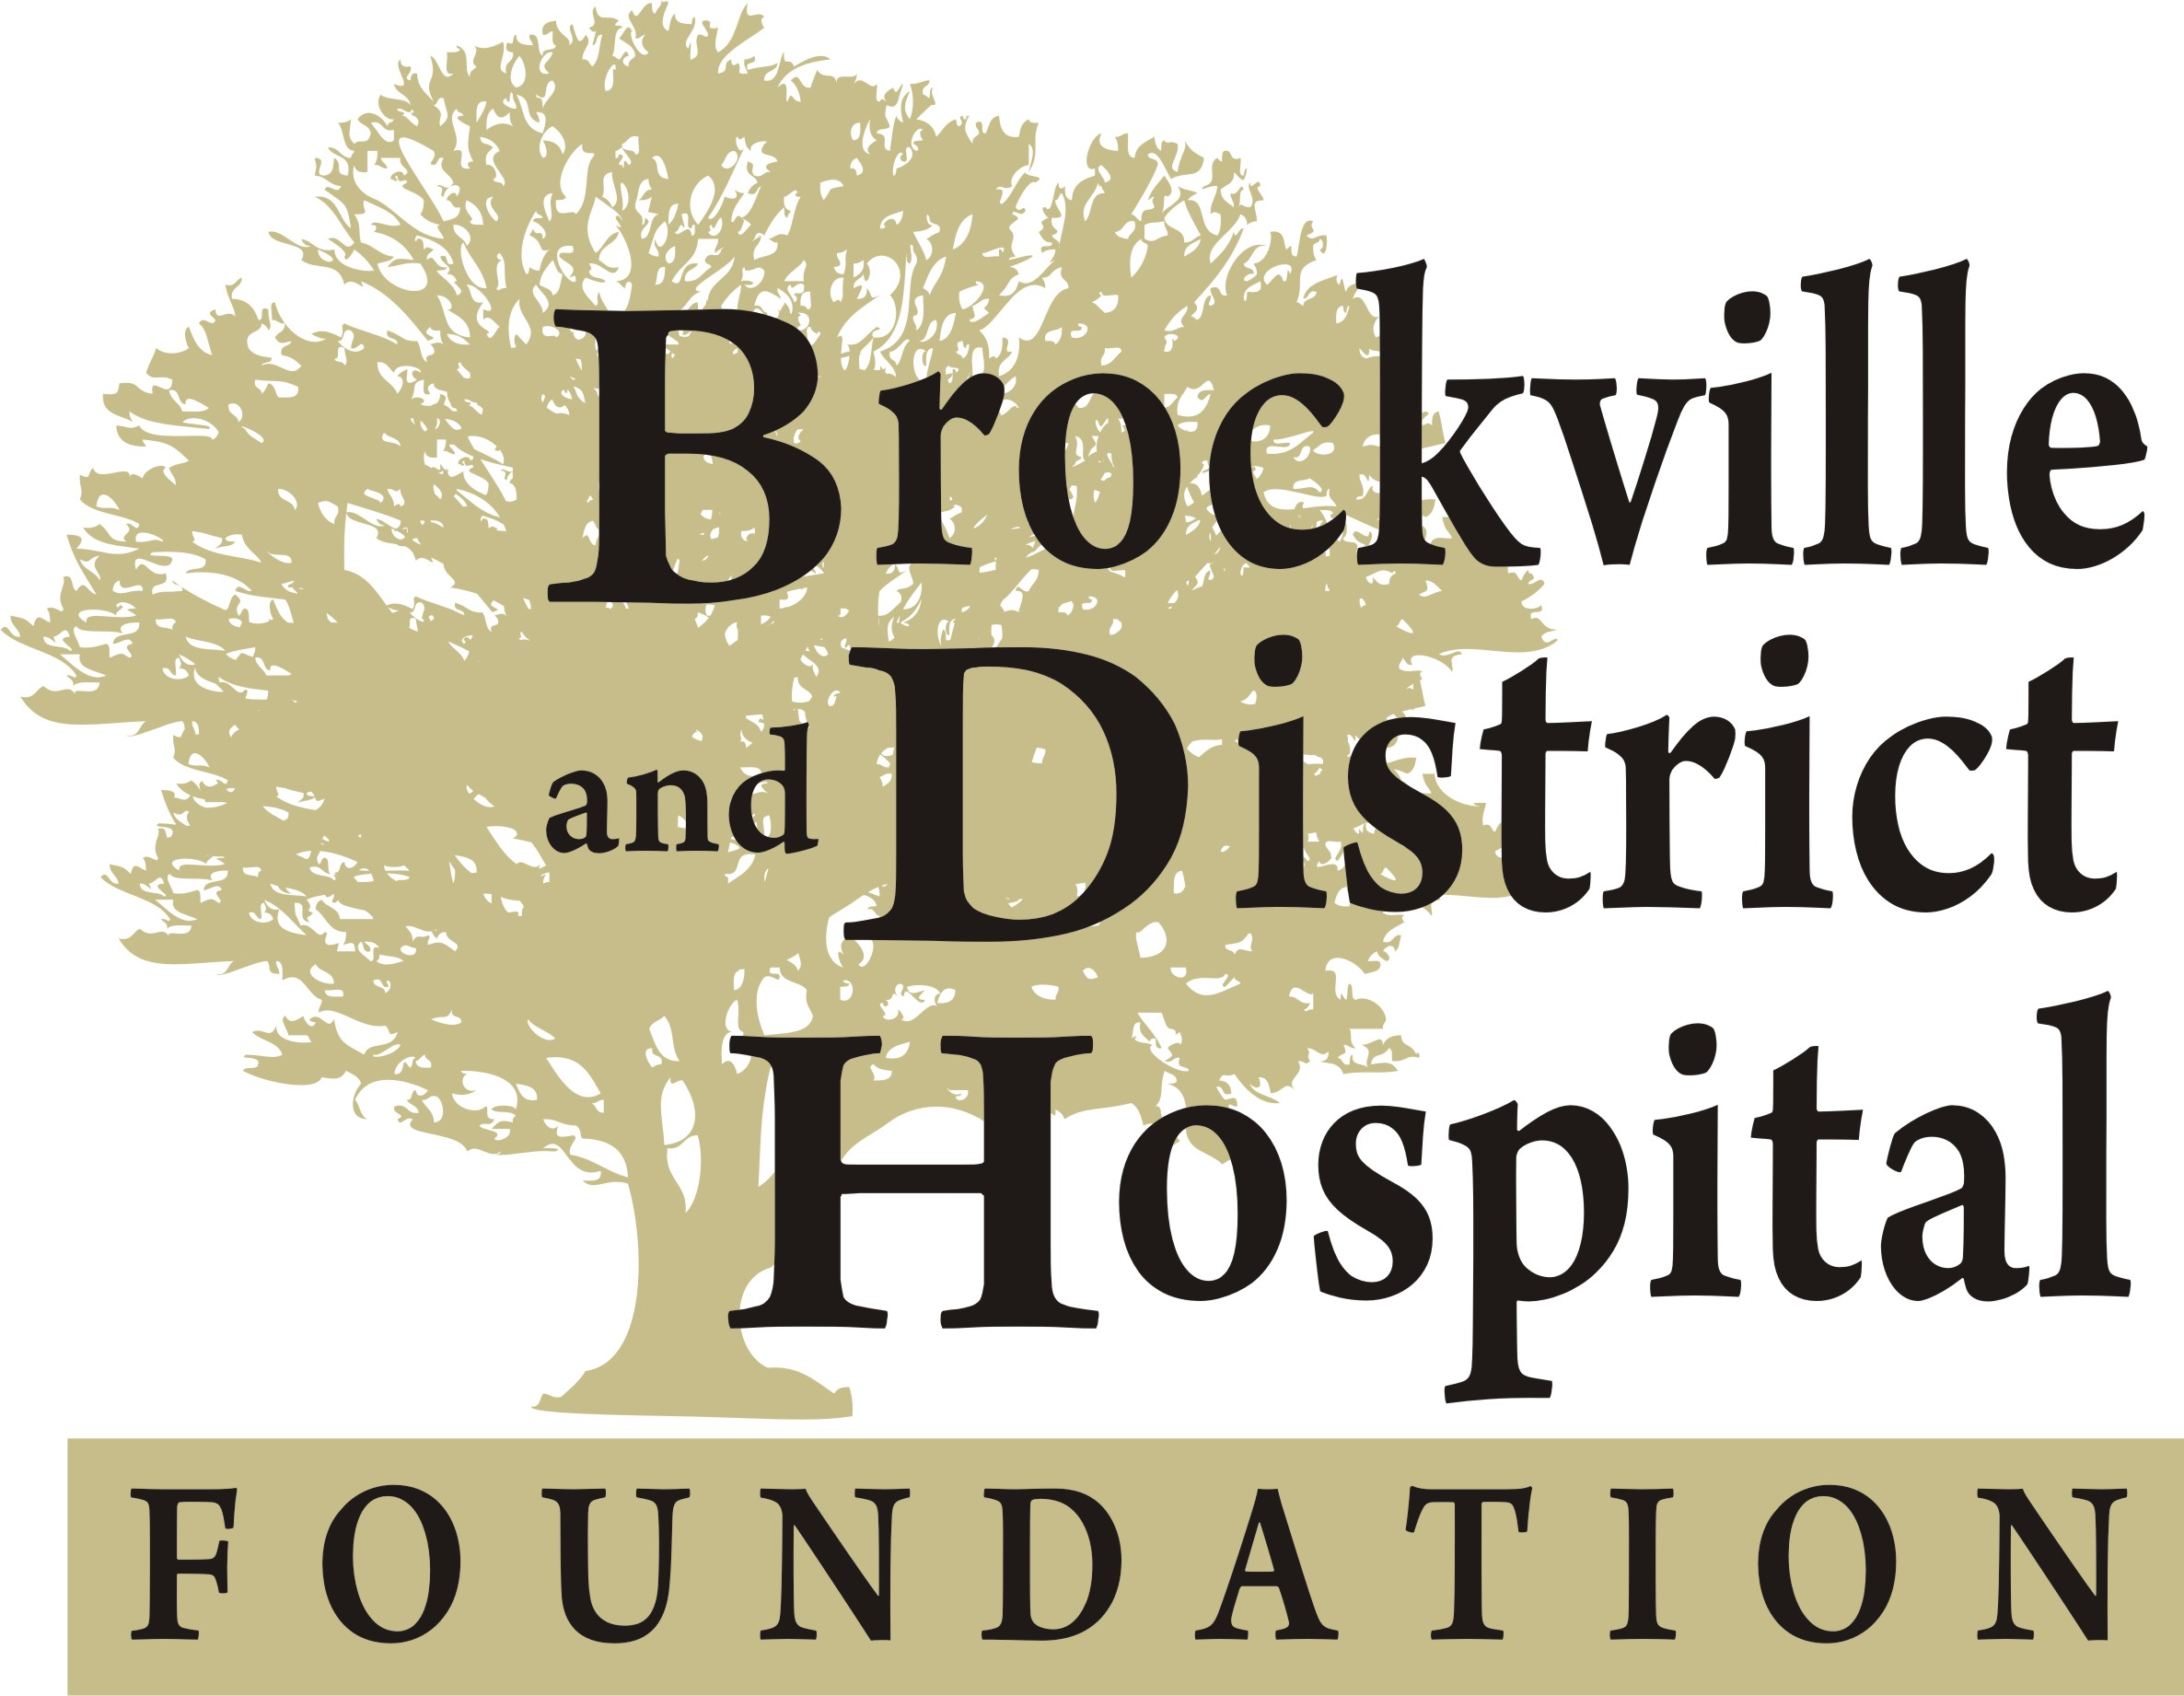 Brockville & District Hospital Foundation